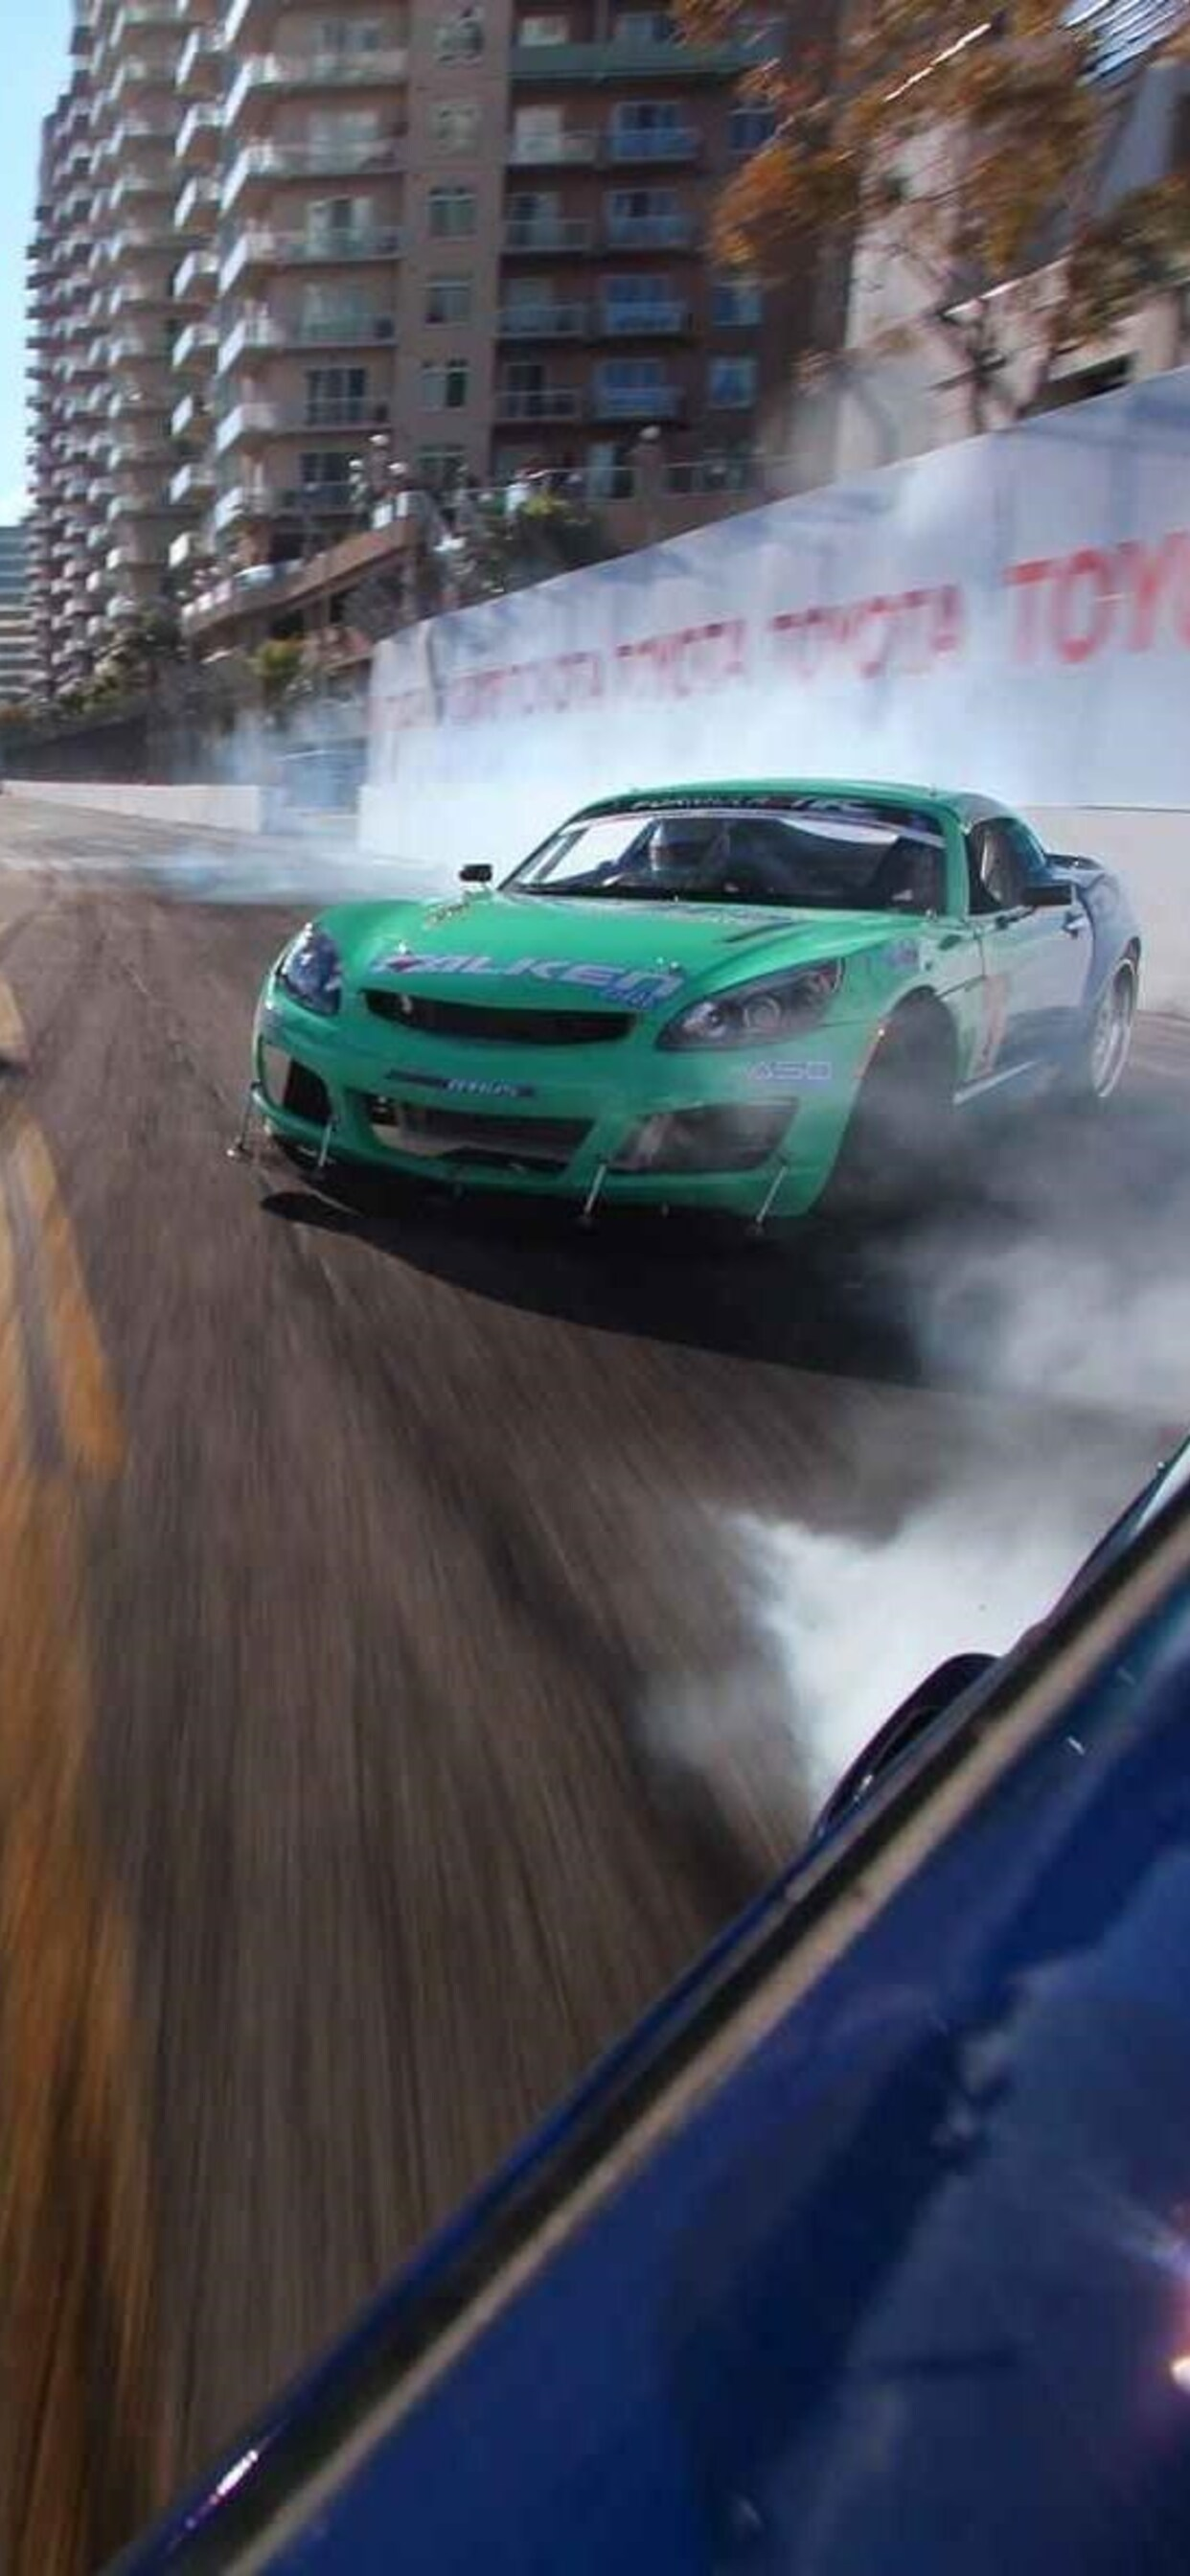 1242x2688 Racing Cars Drift Iphone Xs Max Hd 4k Wallpapers Images